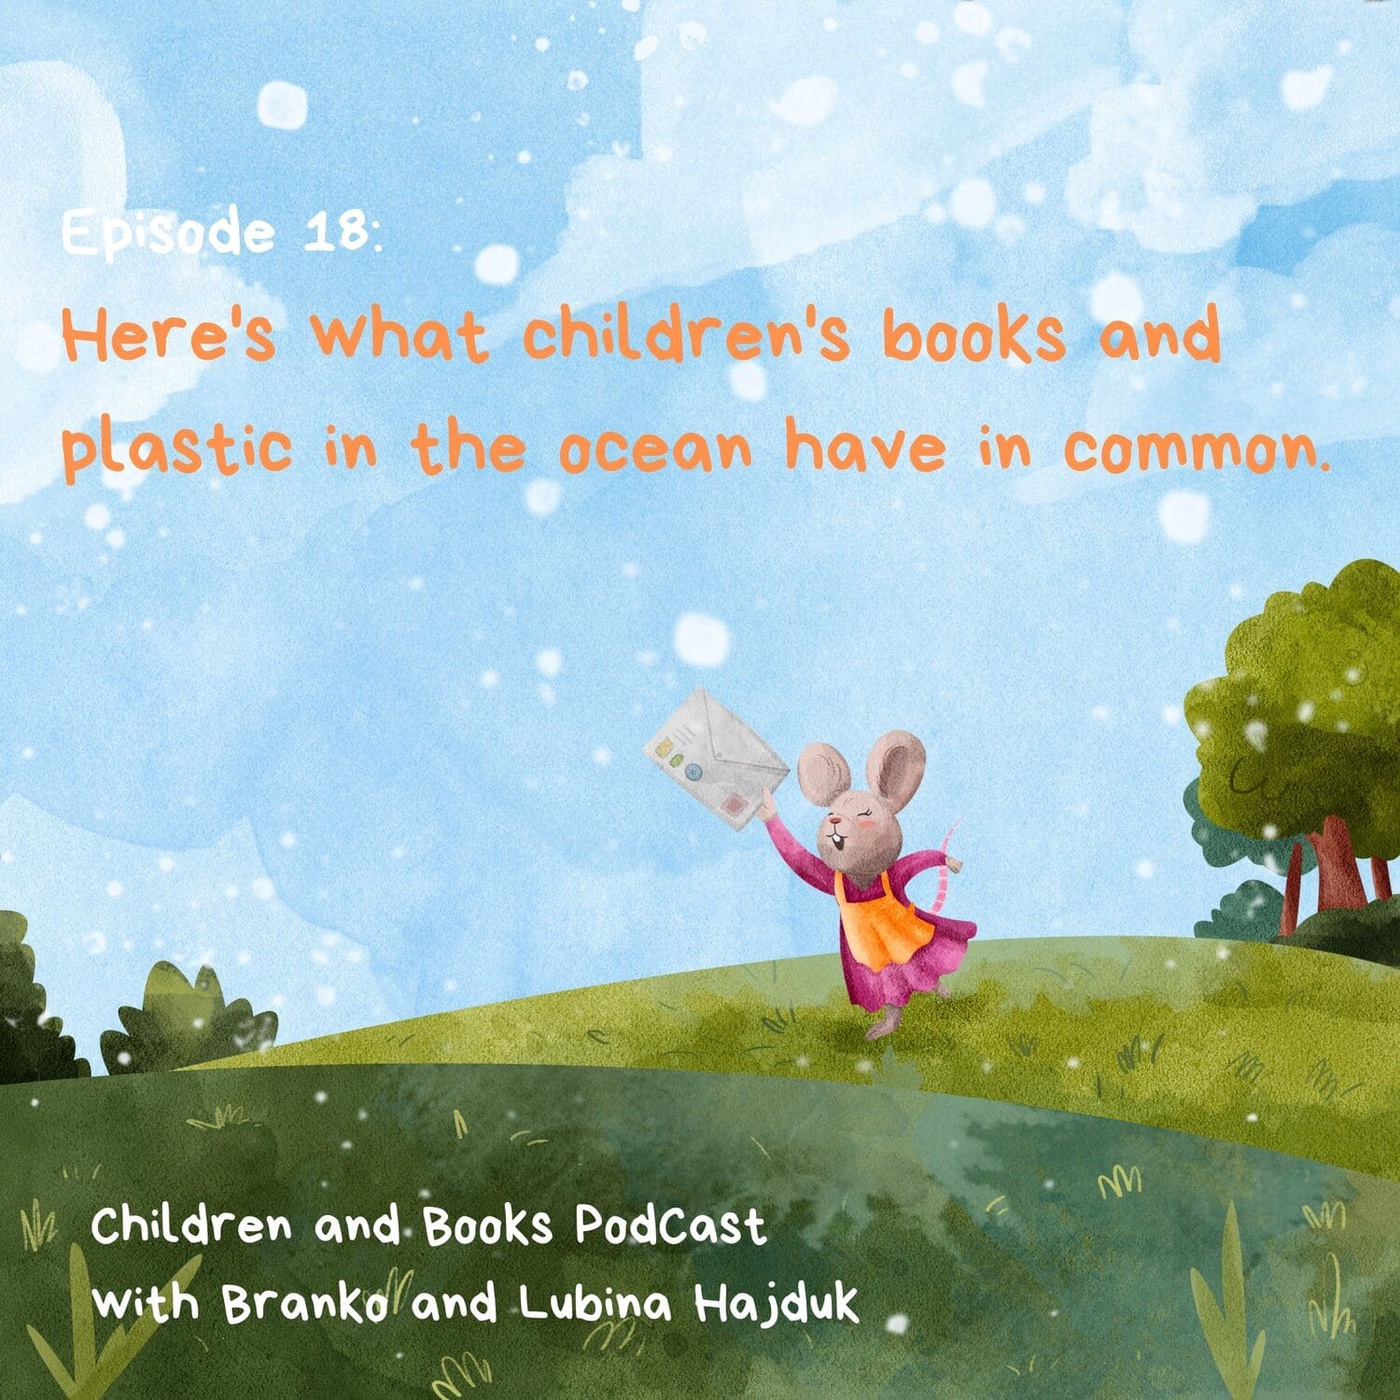 Here's what children's books and plastic in the ocean have to do with each other - Children and Books